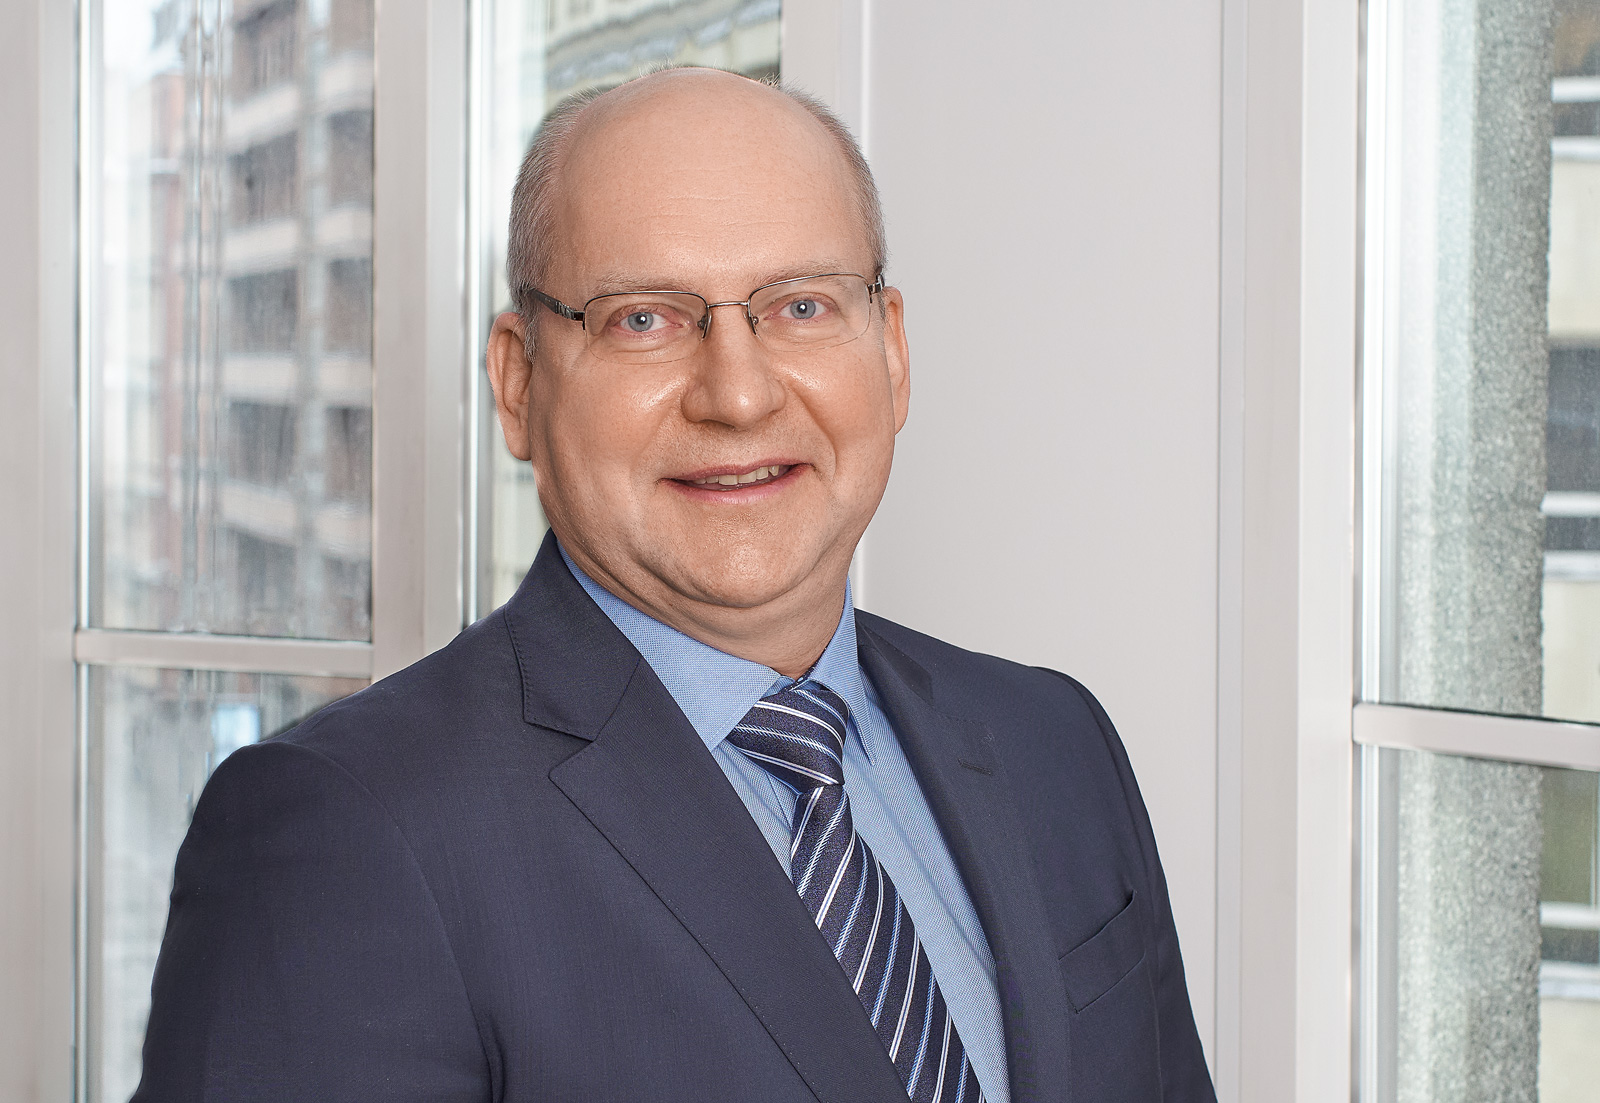 Edgars Ragels, Corporate Finance and Valuation Director